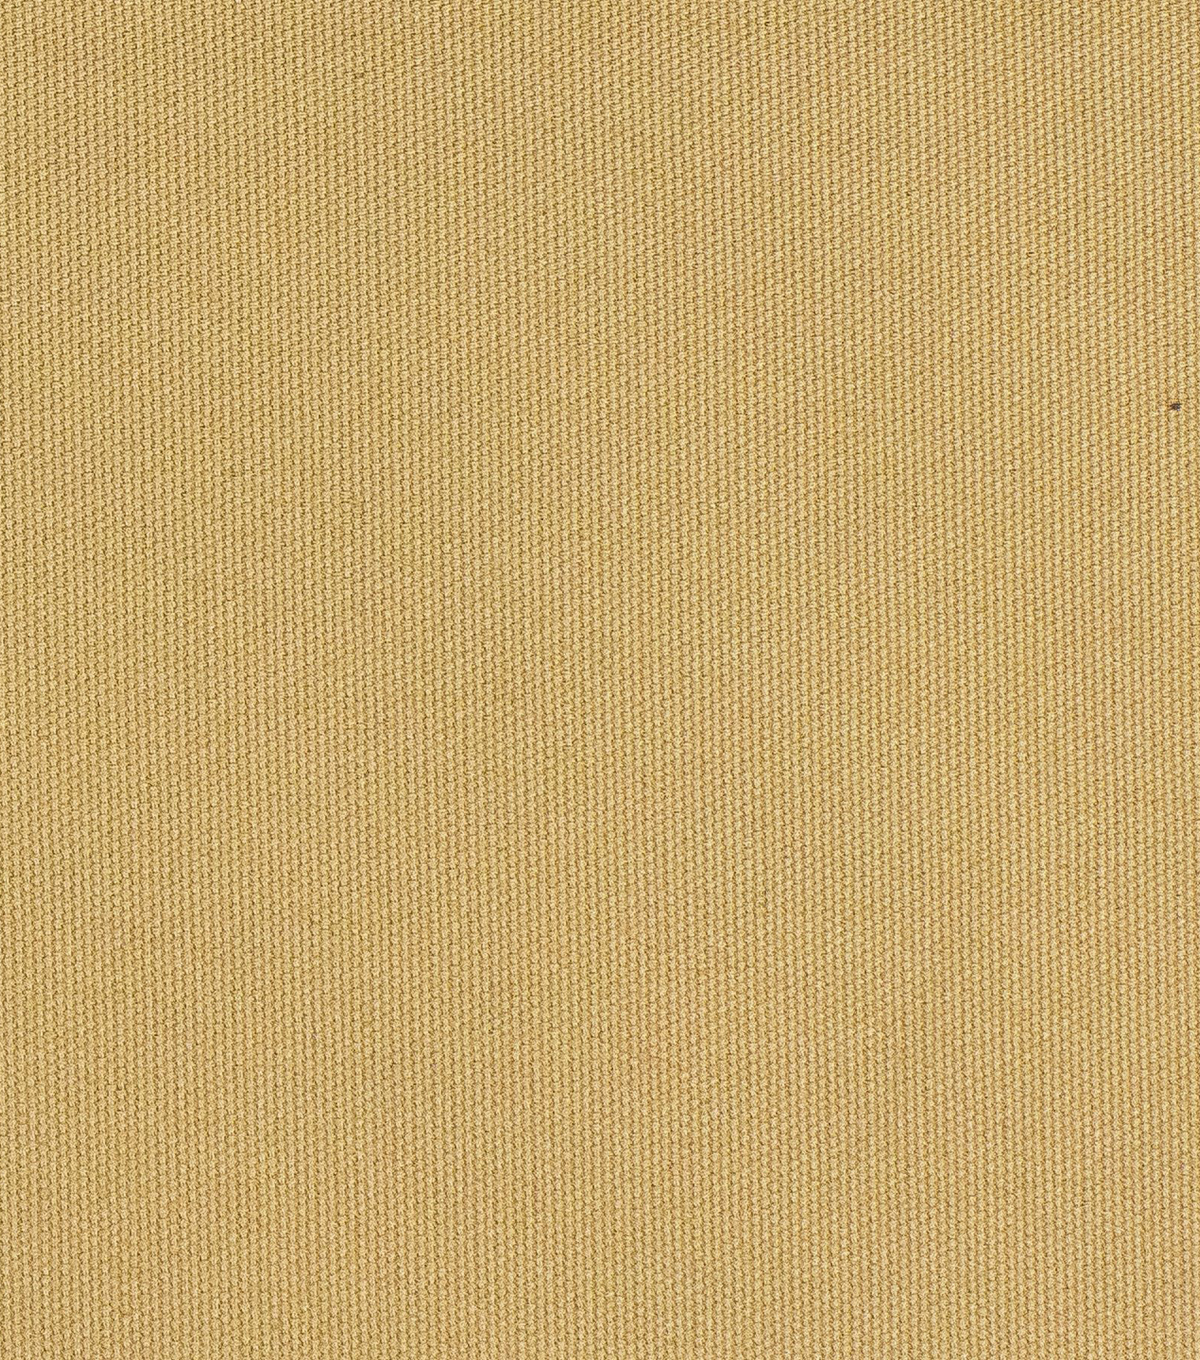 Home Decor 8\u0022x8\u0022 Fabric Swatch-Elite Orion Vanilla Bean